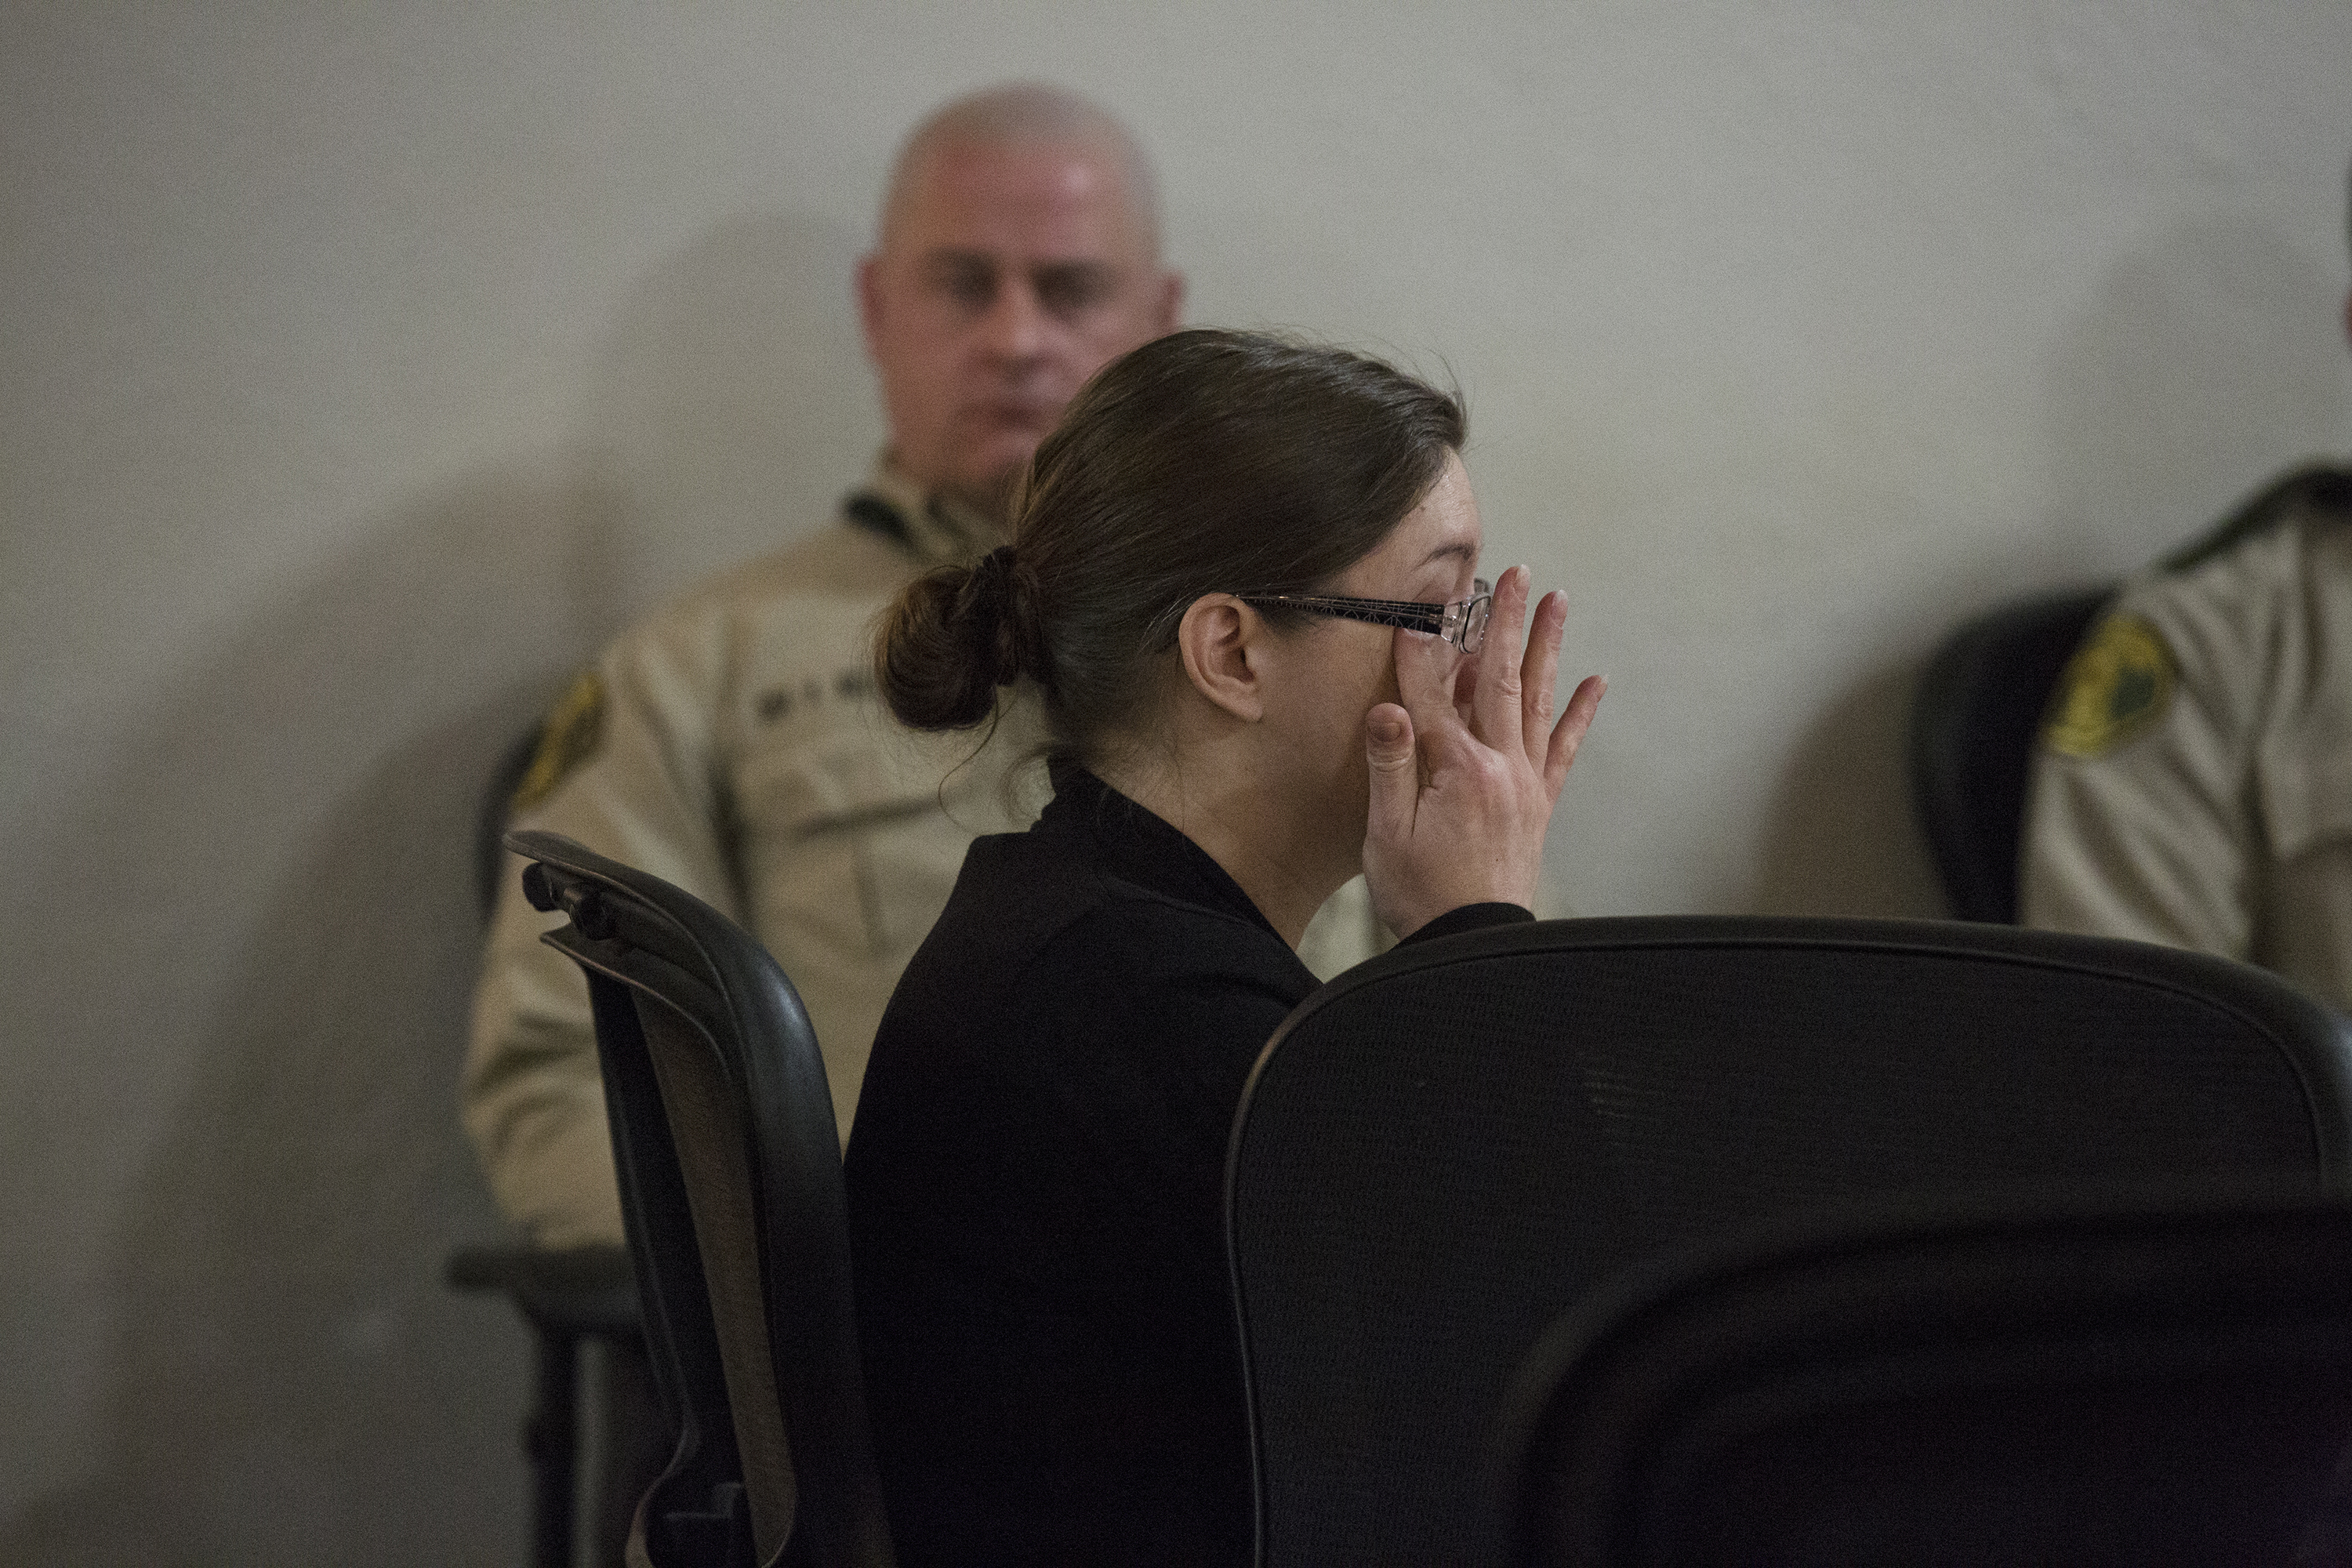 Nicole Finn, of West Des Moines, wipes the corner of her eye after the second day of testimony from Amy Sacco, a social worker for Iowa's Department of Human Services, during Finn's trial for murder, kidnapping and child endangerment on Wednesday, Dec. 6, 2017, at the Polk County Courthouse.(Kelsey Kremer /The Des Moines Register via AP, Pool)